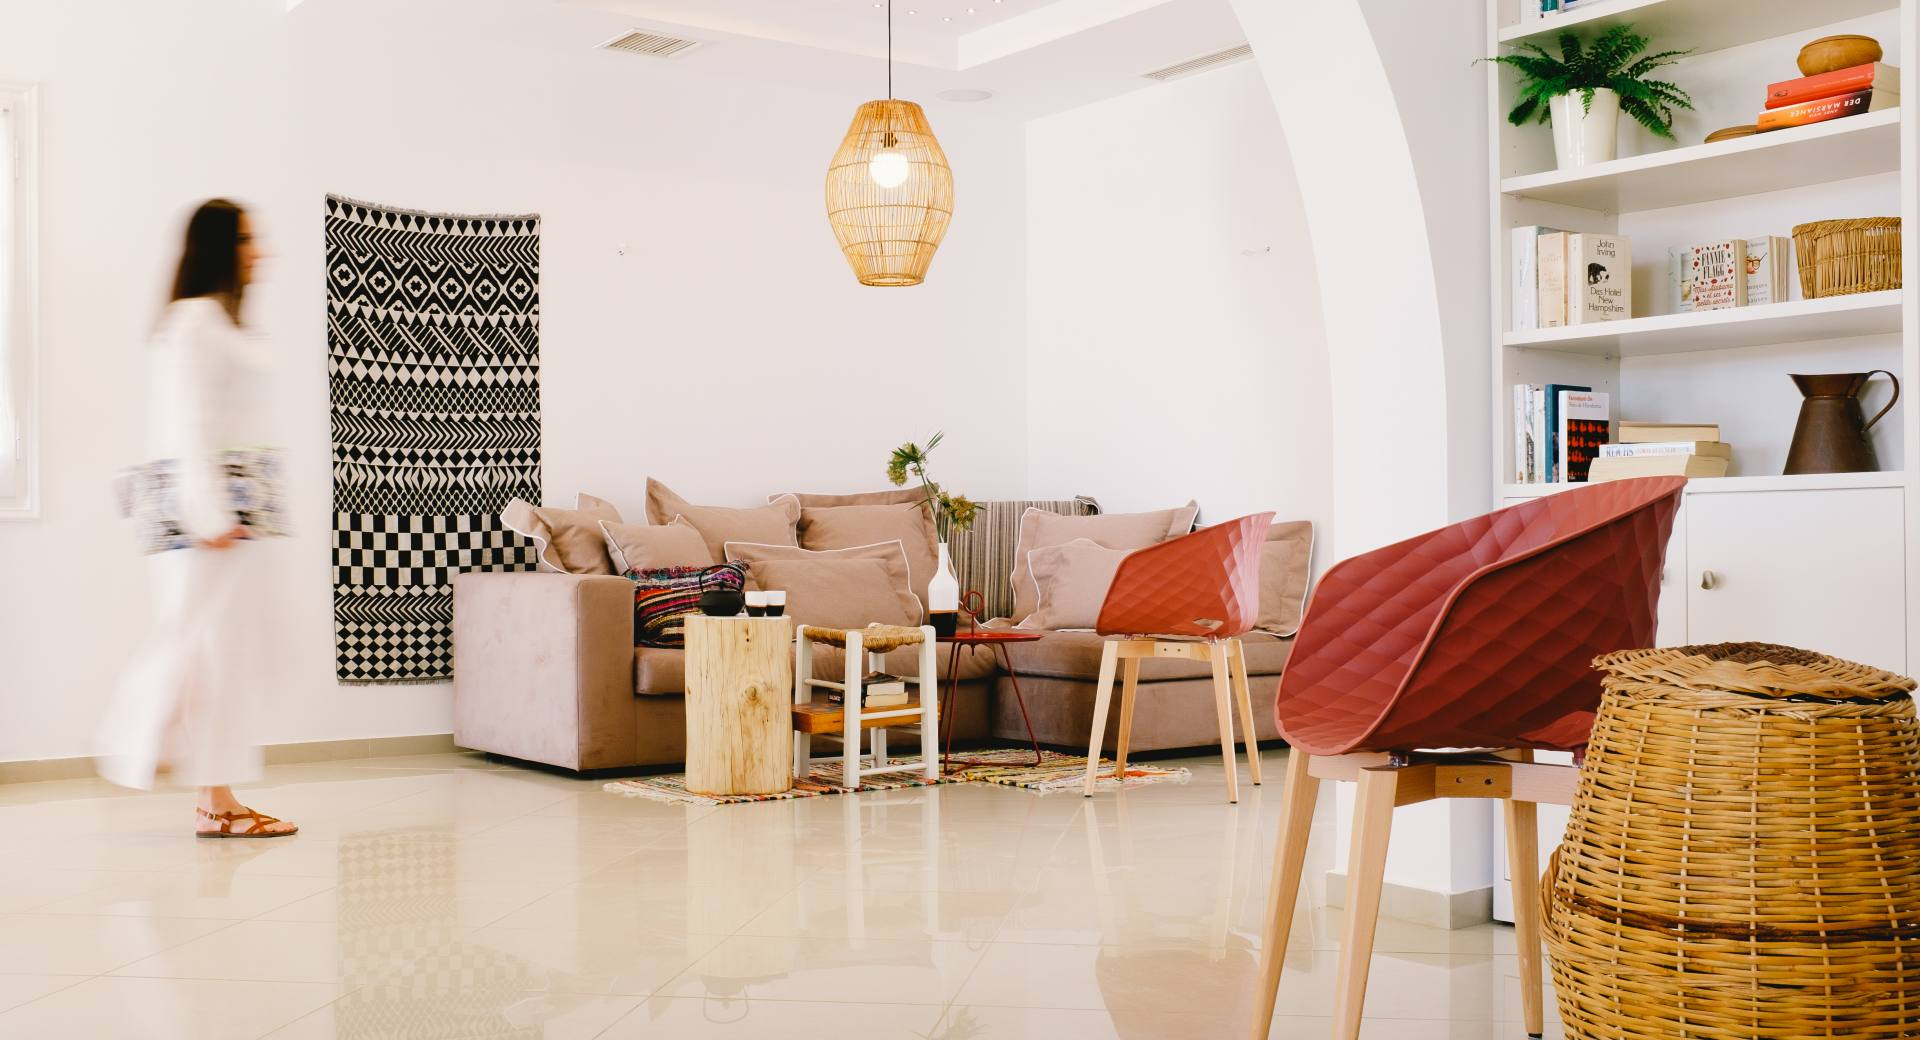 Naxos Hotel Luxe